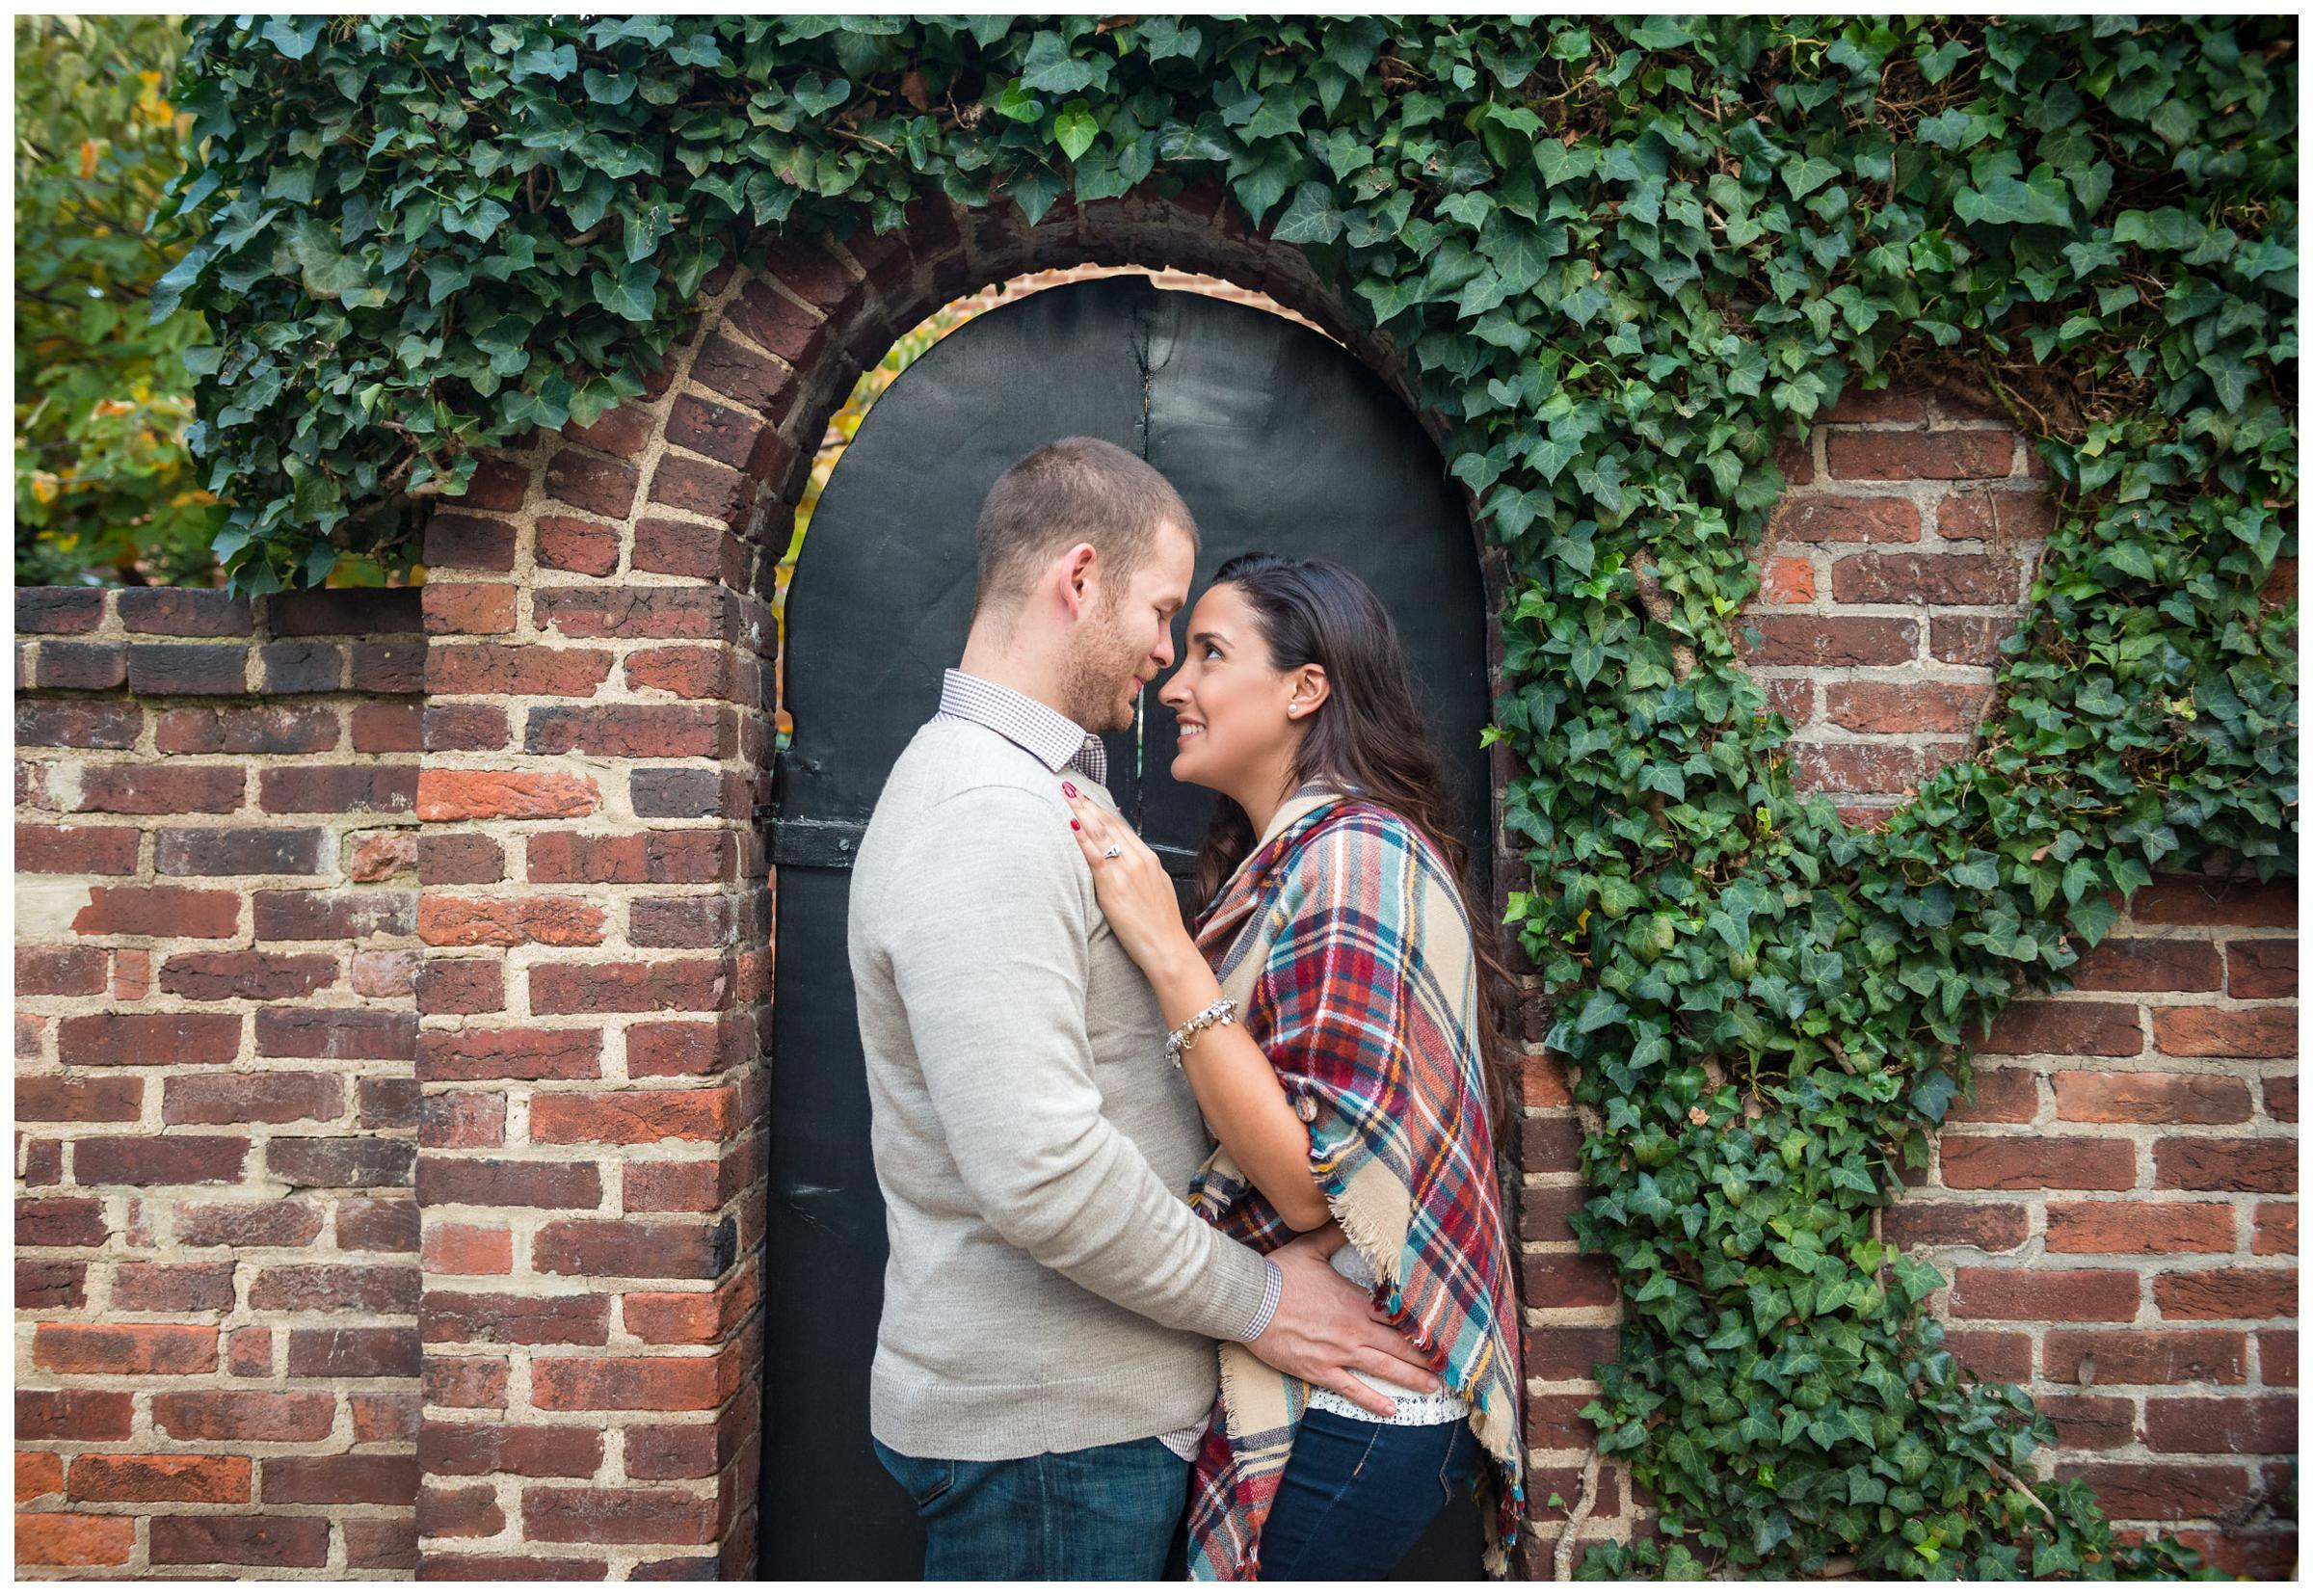 engaged couple in front of brick wall and archway surrounded by vines